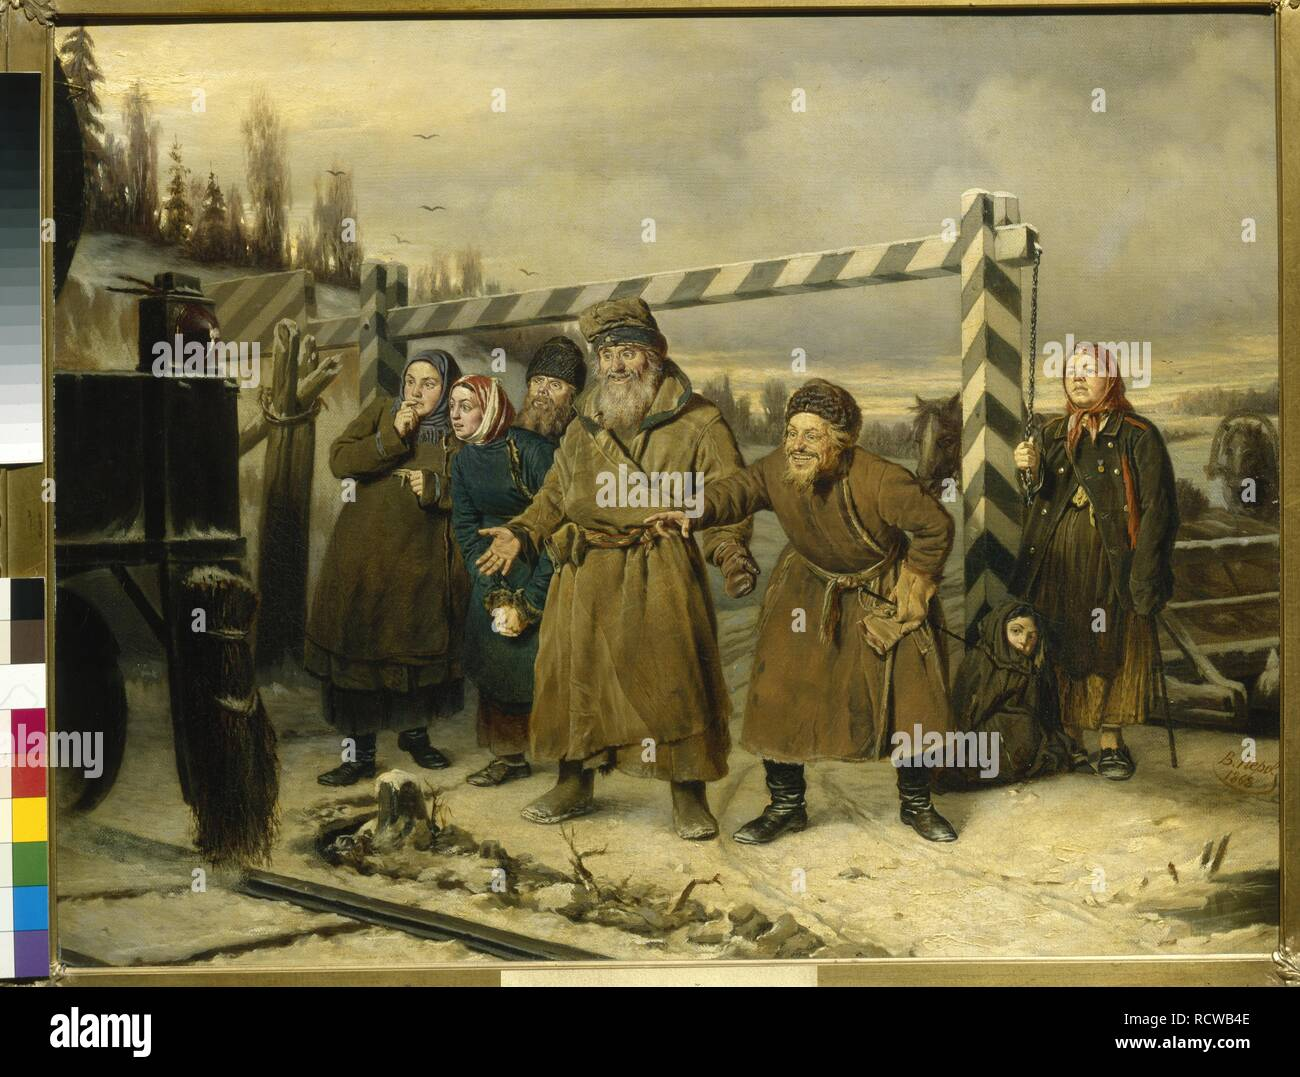 A scene at the Railroad. Museum: State Tretyakov Gallery, Moscow. Author: Perov, Vasili Grigoryevich. - Stock Image